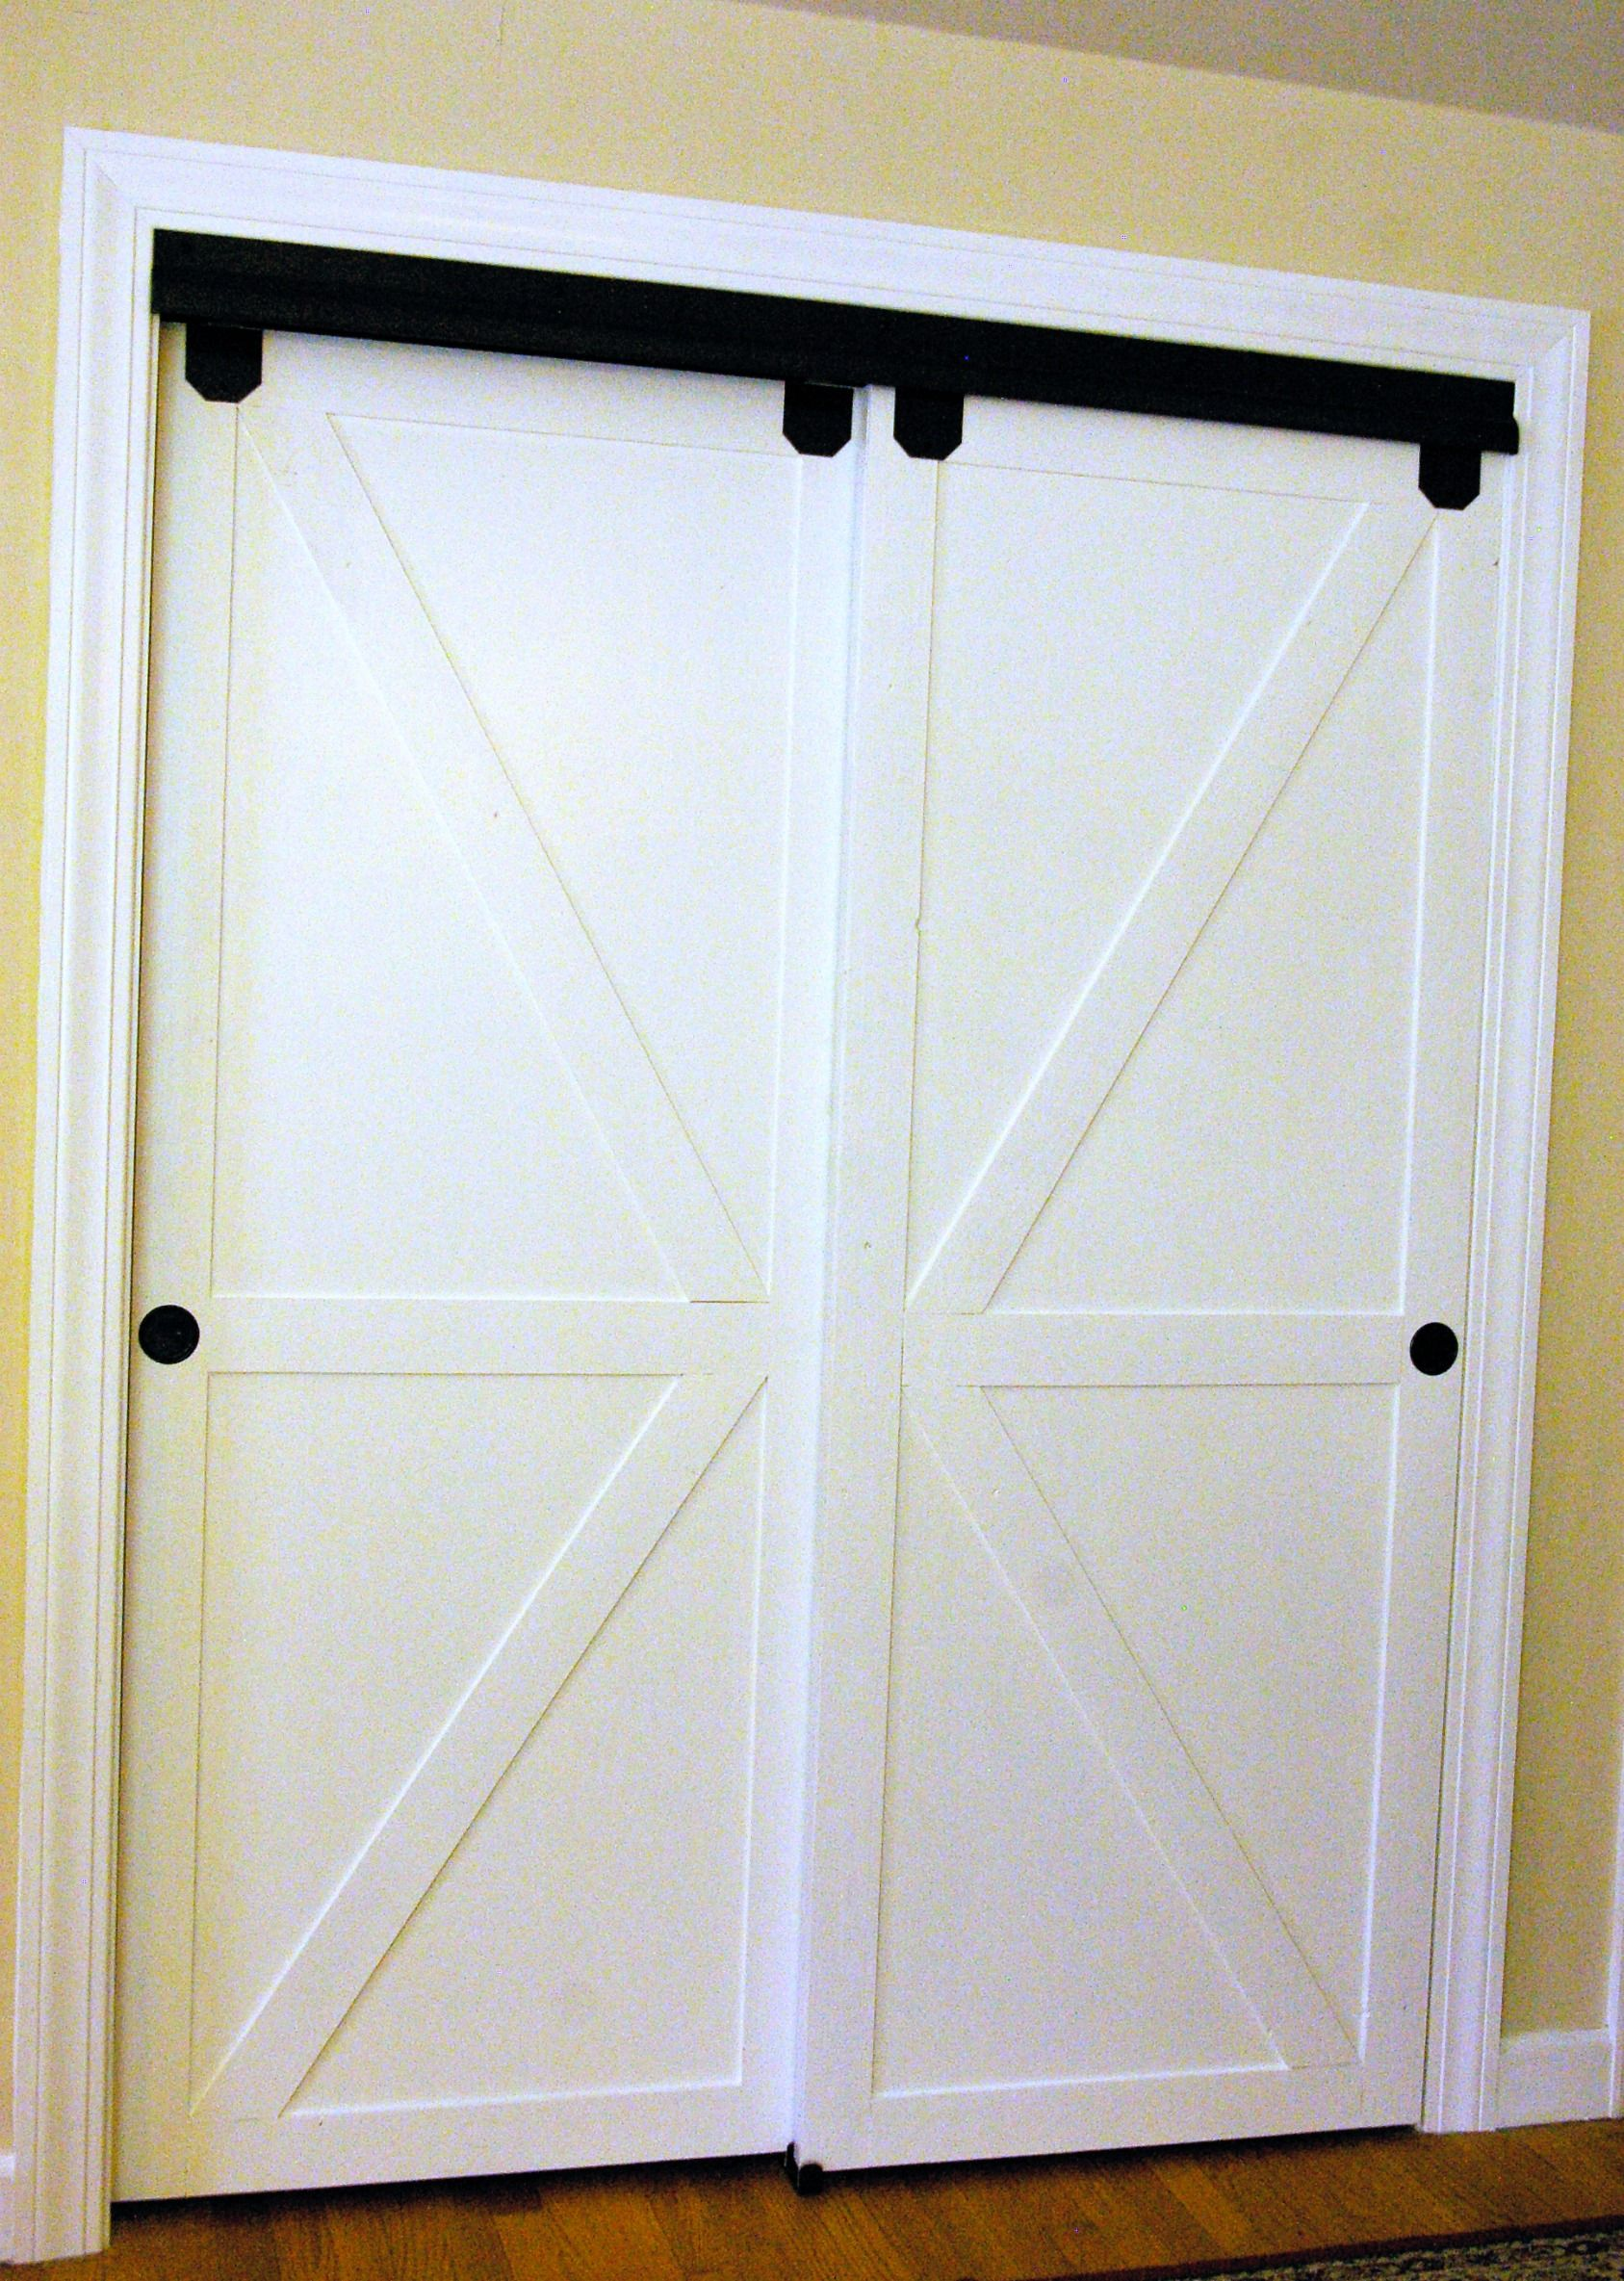 locks doors for measurements x privacy woodworking door barn barns ideas lock sliding network